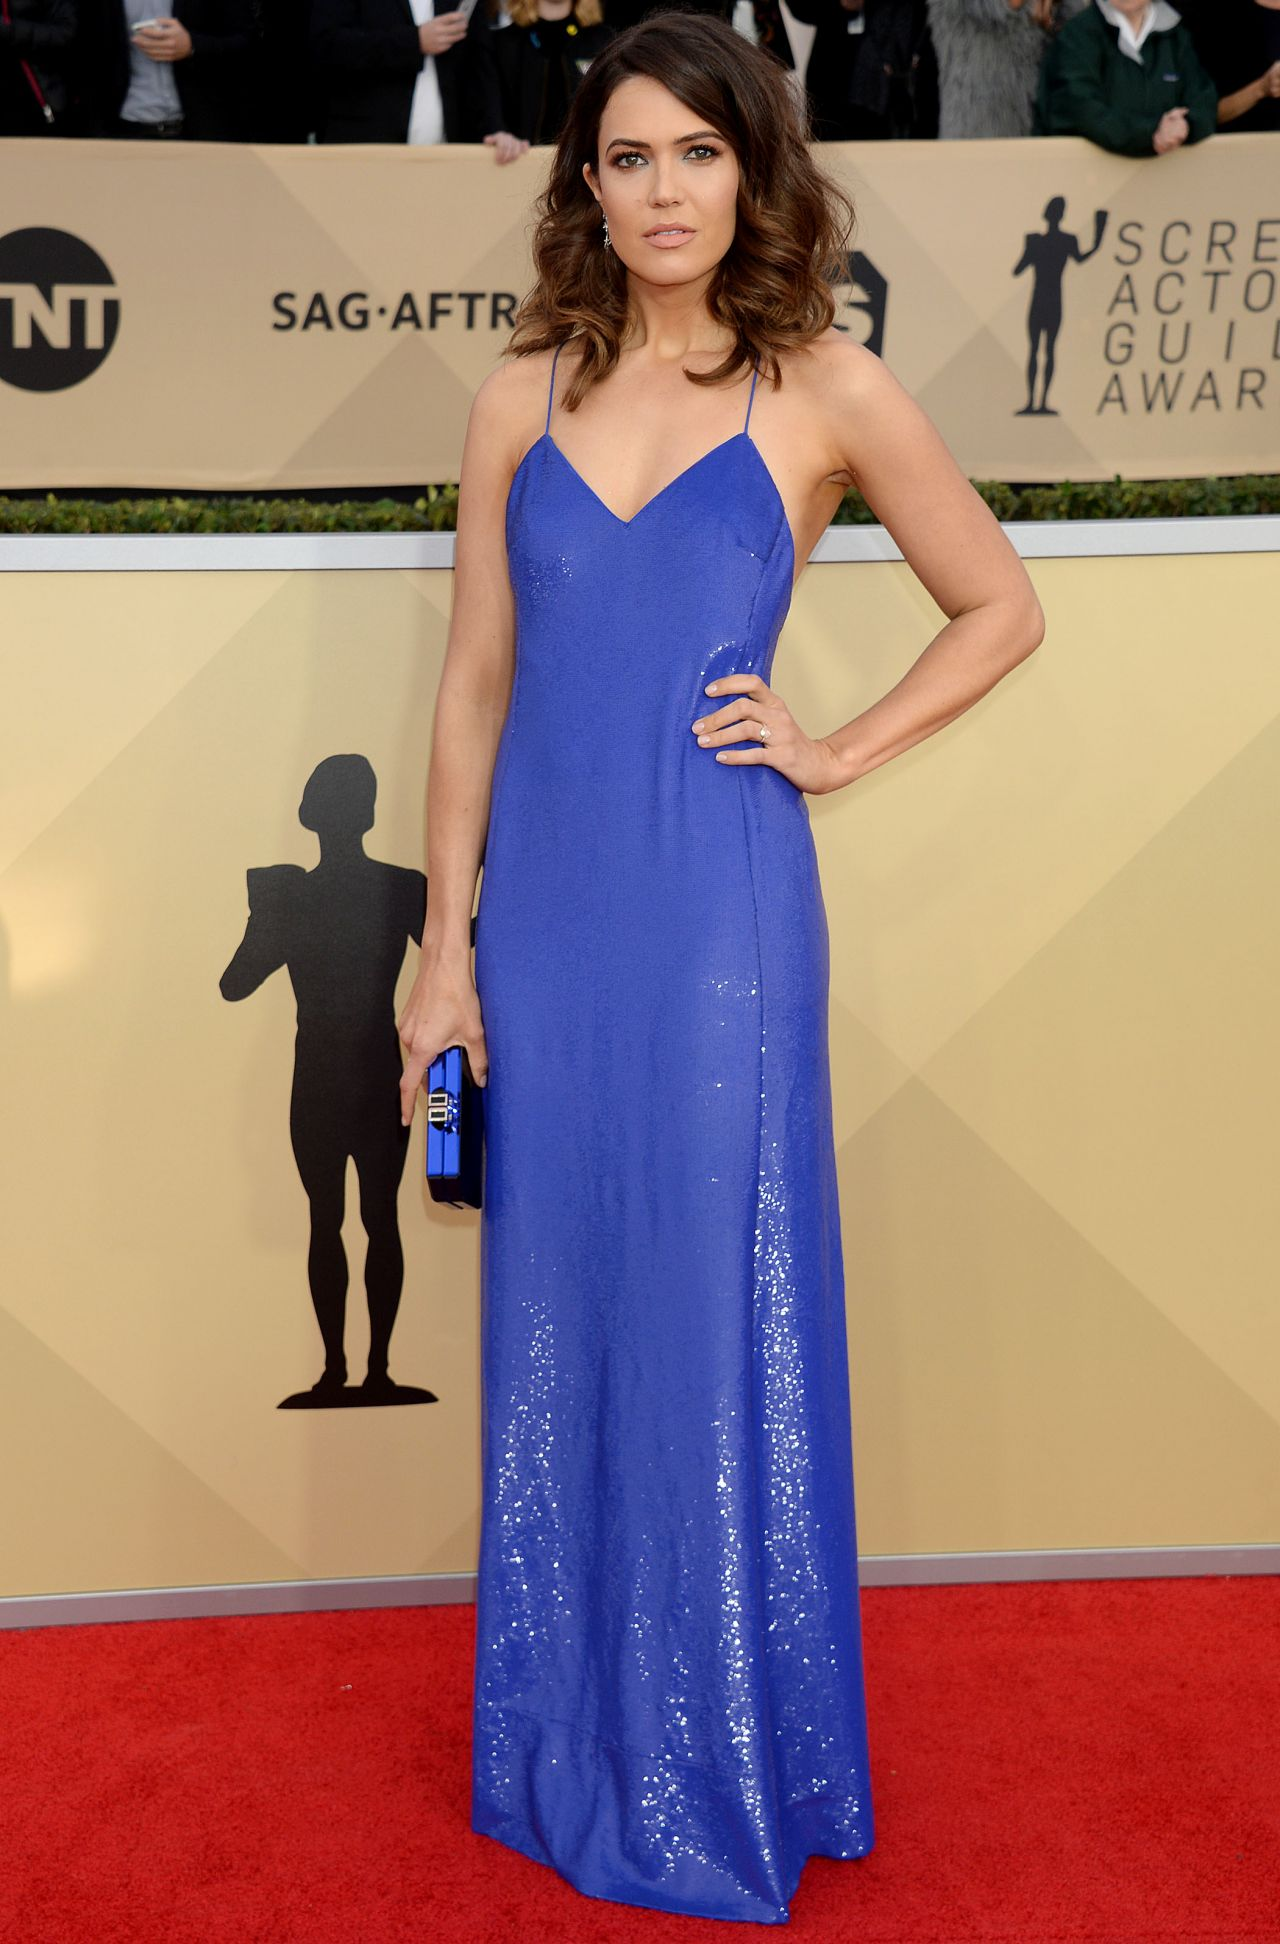 http://celebmafia.com/wp-content/uploads/2018/01/mandy-moore-2018-sag-awards-in-la-6.jpg